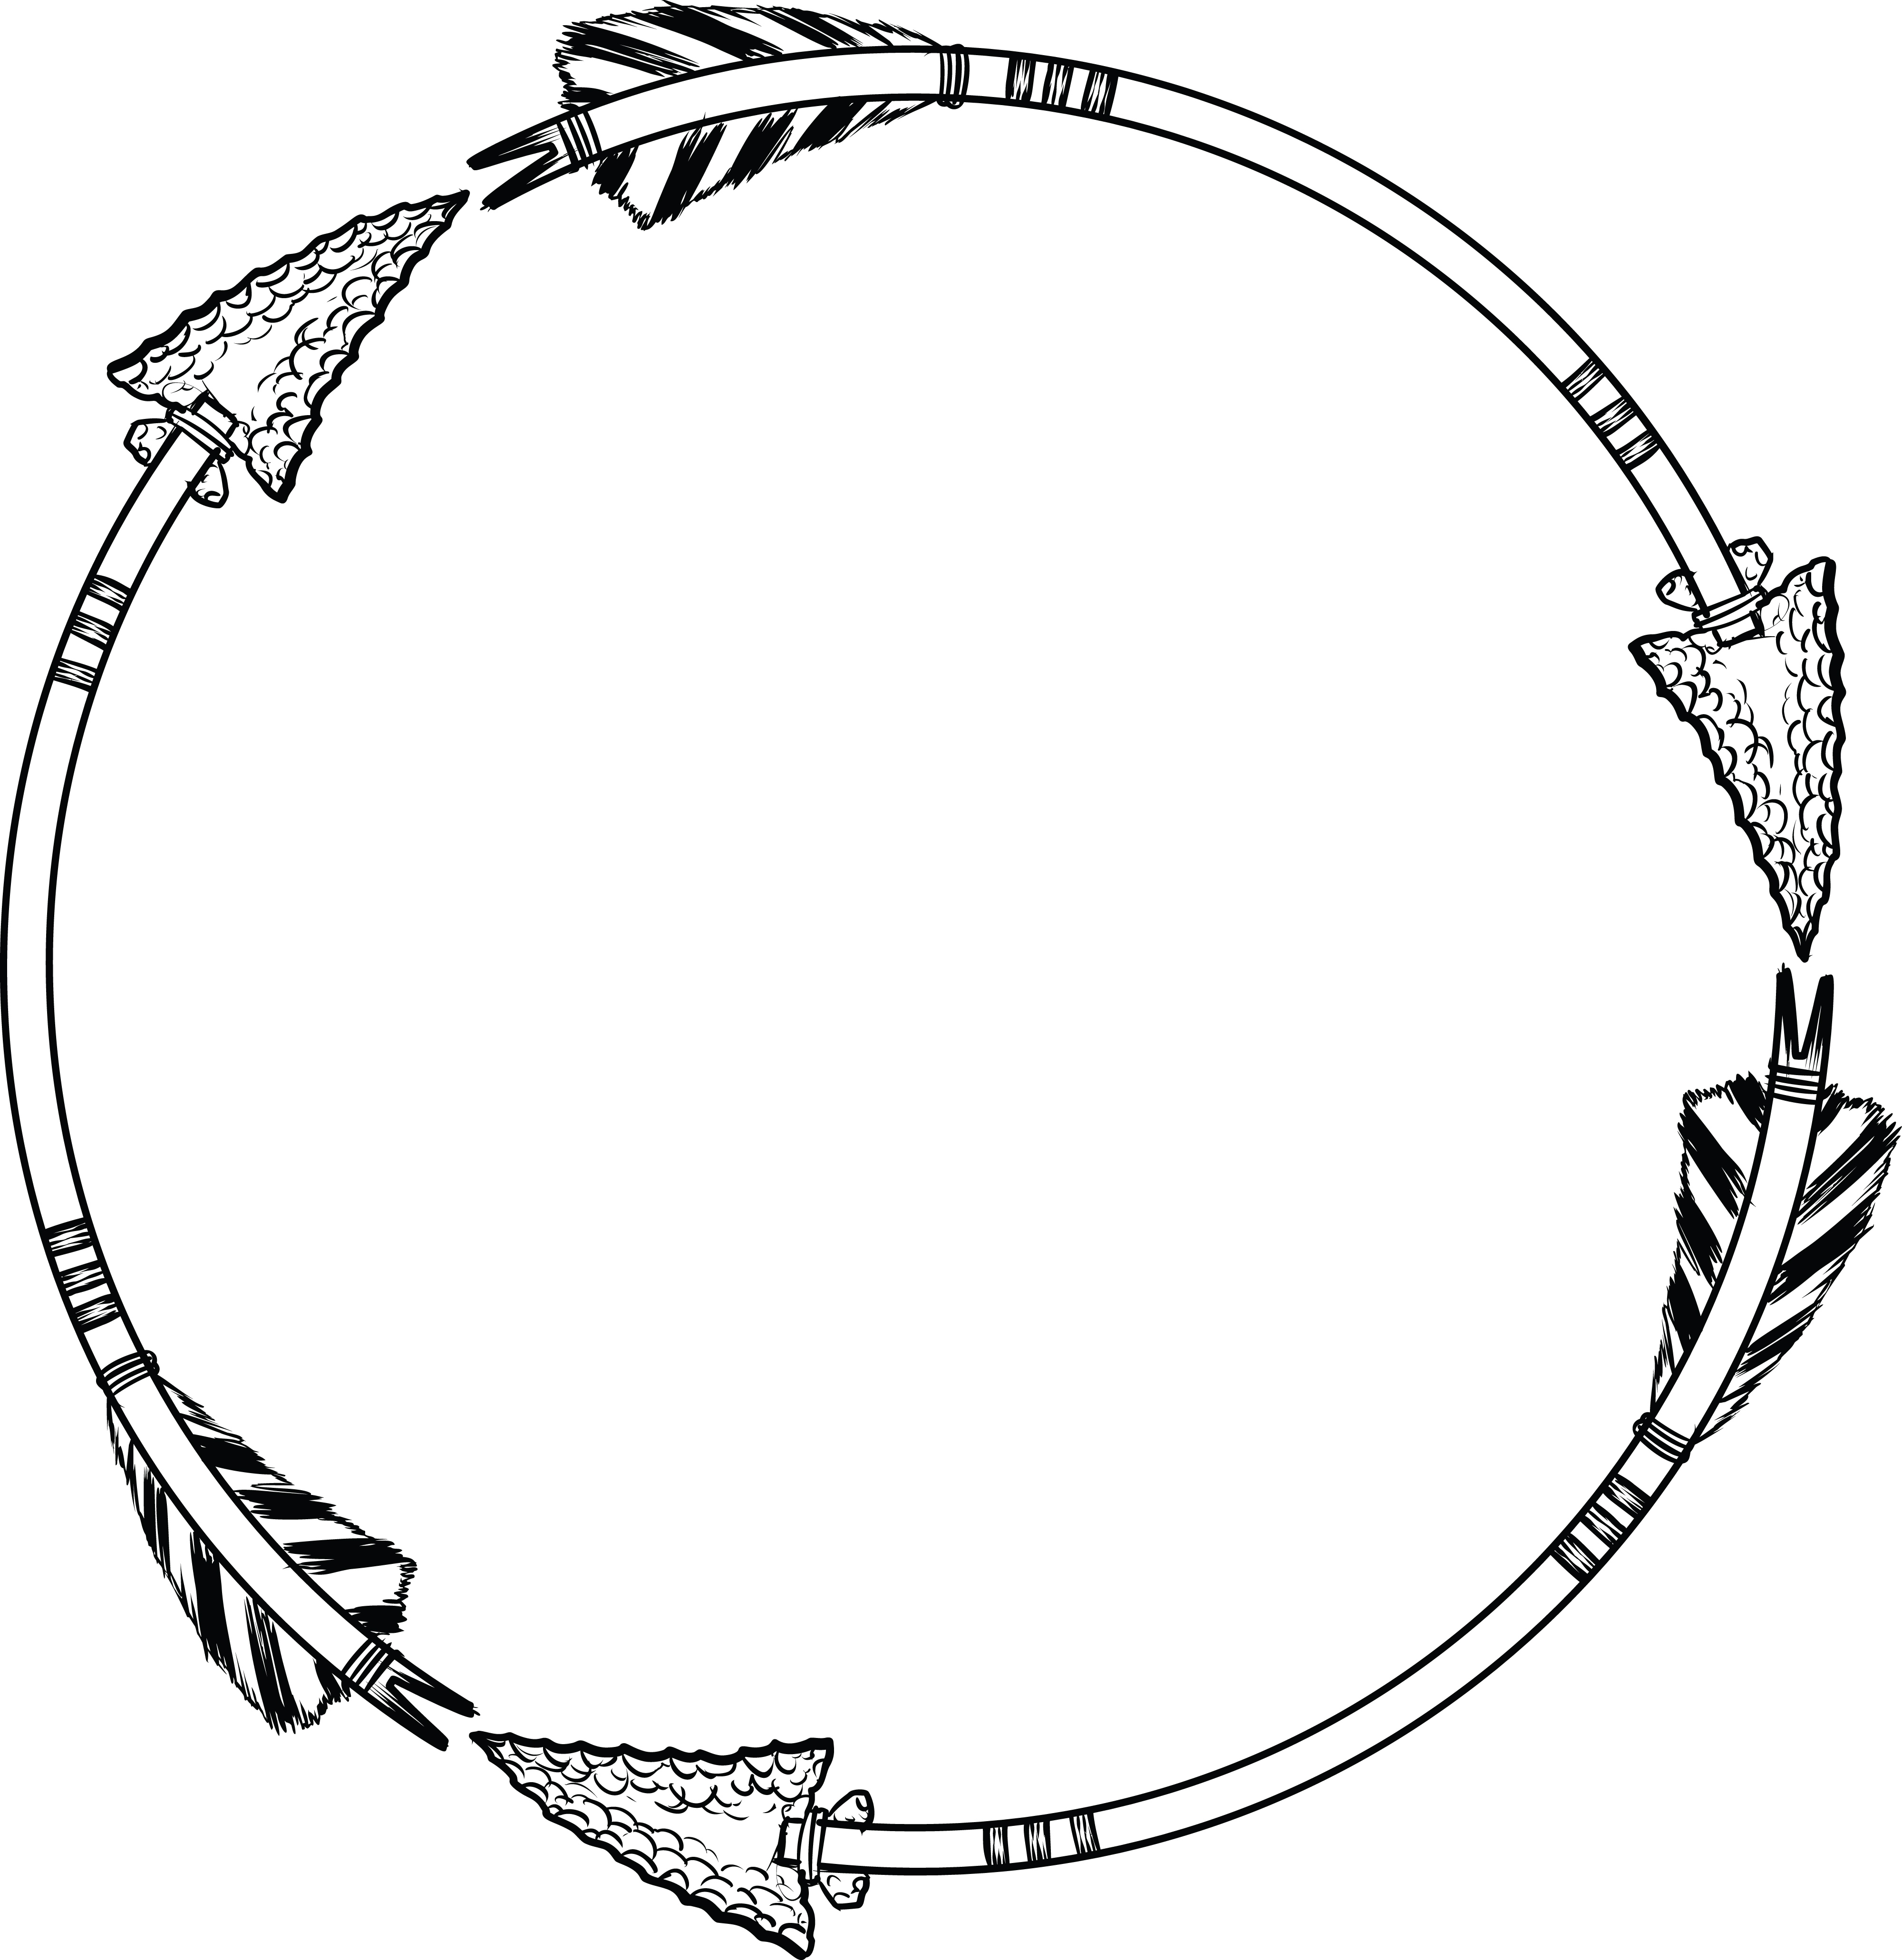 free clipart of a flint arrow circle shaped frame rh free clipartof com circle clip art numbers 1-10 circus clipart black and white